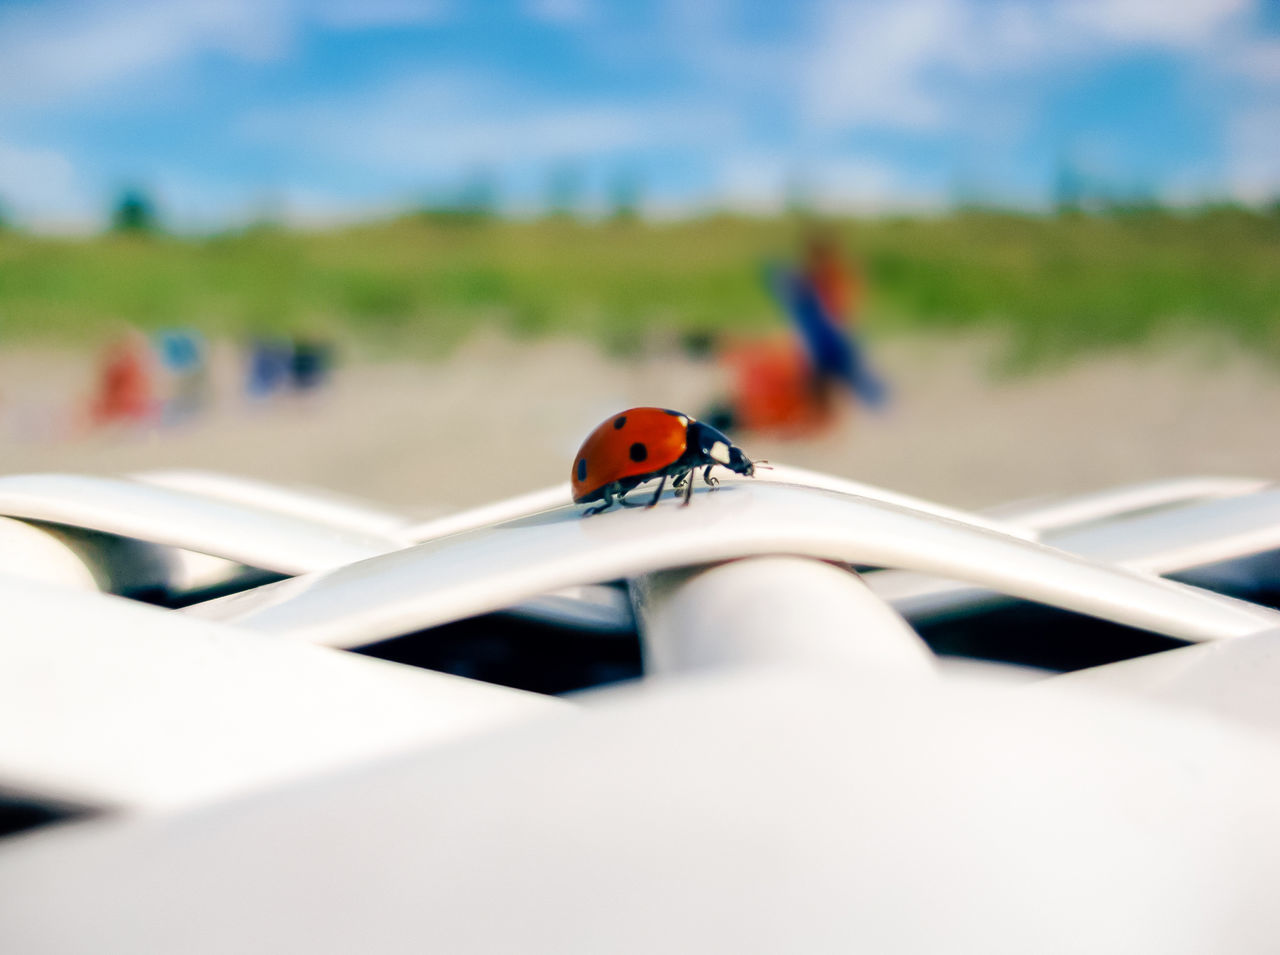 Ladybird on a beach chair Animal Themes Baltic Sea Beach Beach Chair Close-up Day Germany Insect Ladybeetle Ladybird Ladybug Luck Lucky Nature One Animal One Person Outdoors